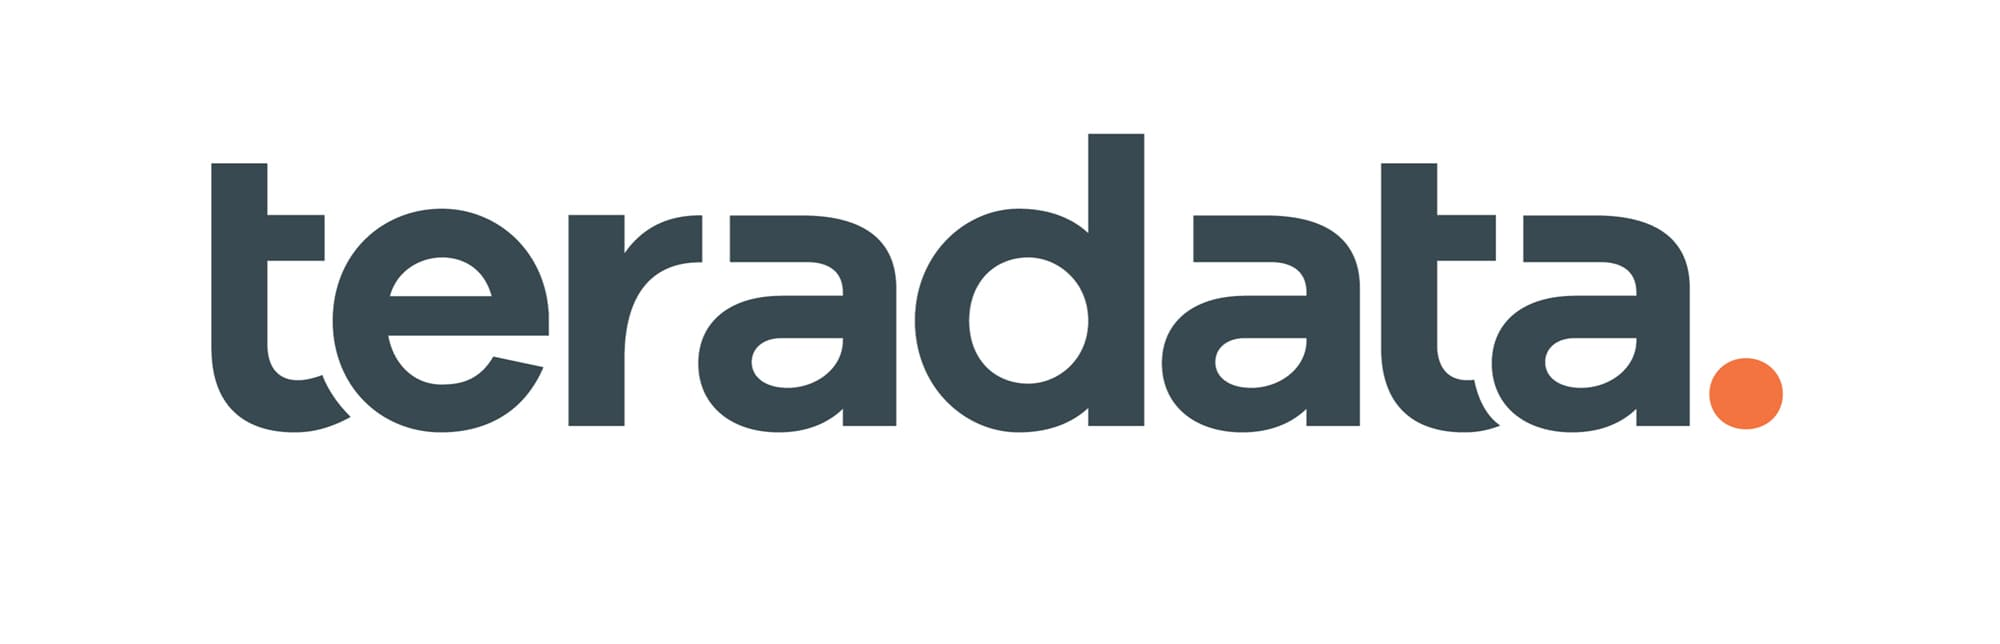 Teradata_logo-two_color-min.jpg